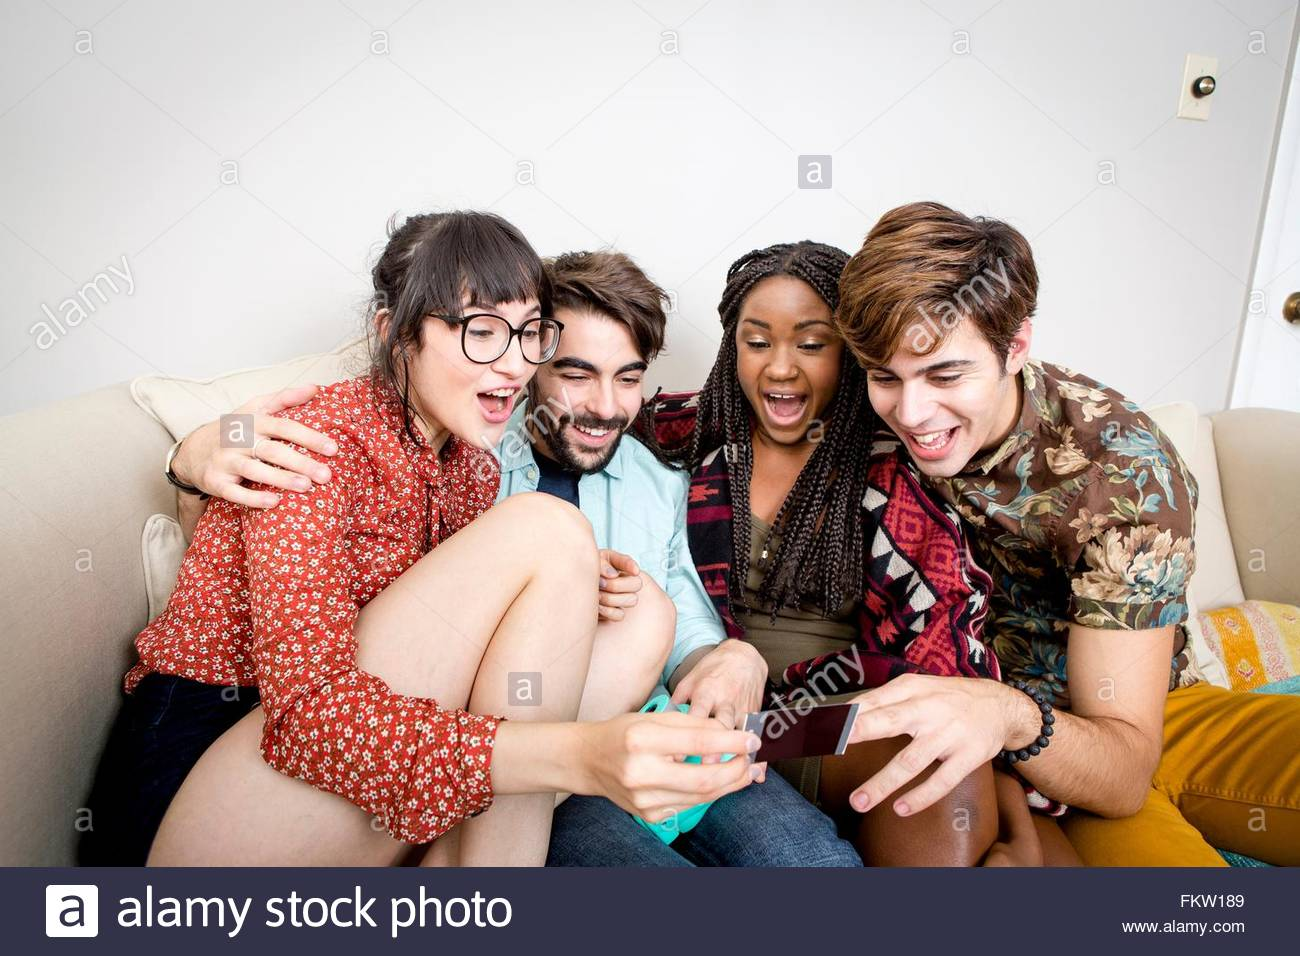 Two young hipster couples sitting on apartment sofa laughing at instant photograph - Stock Image